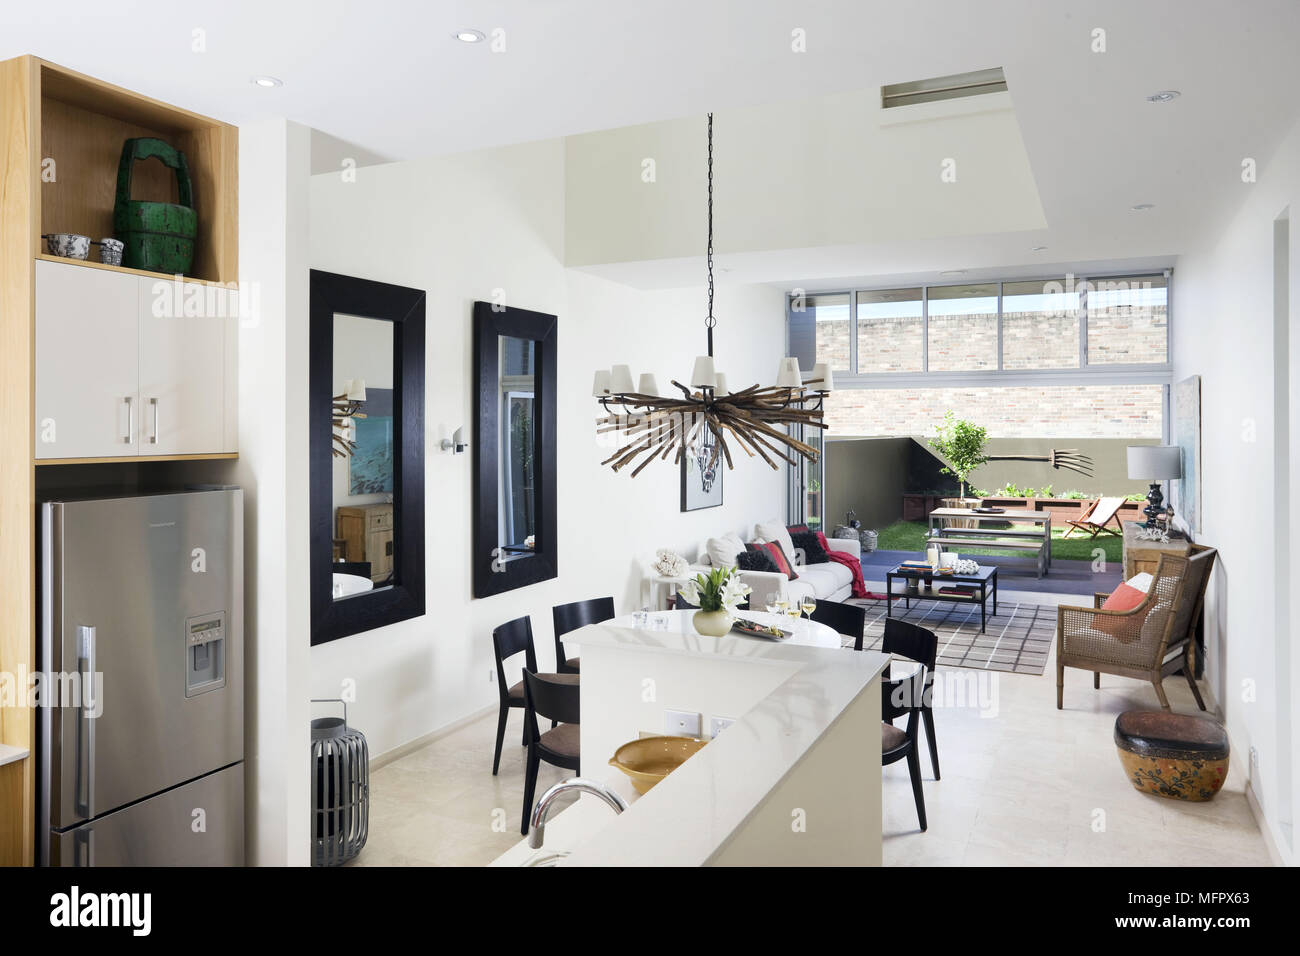 Modern open plan room with kitchen dining and sitting areas and open ...